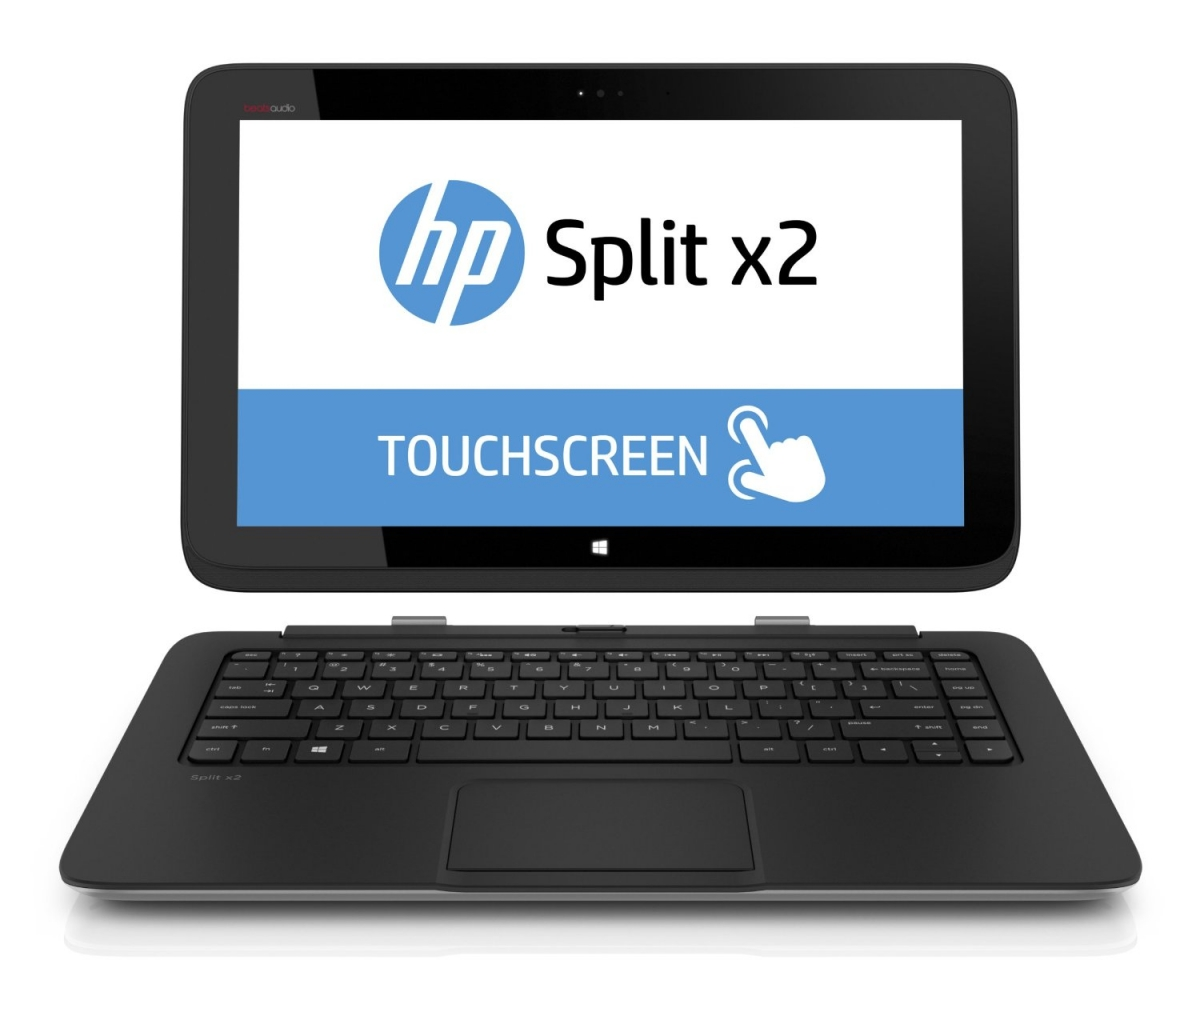 HP Split X2 13-m121sa 13.3in 2-in-1 laptop